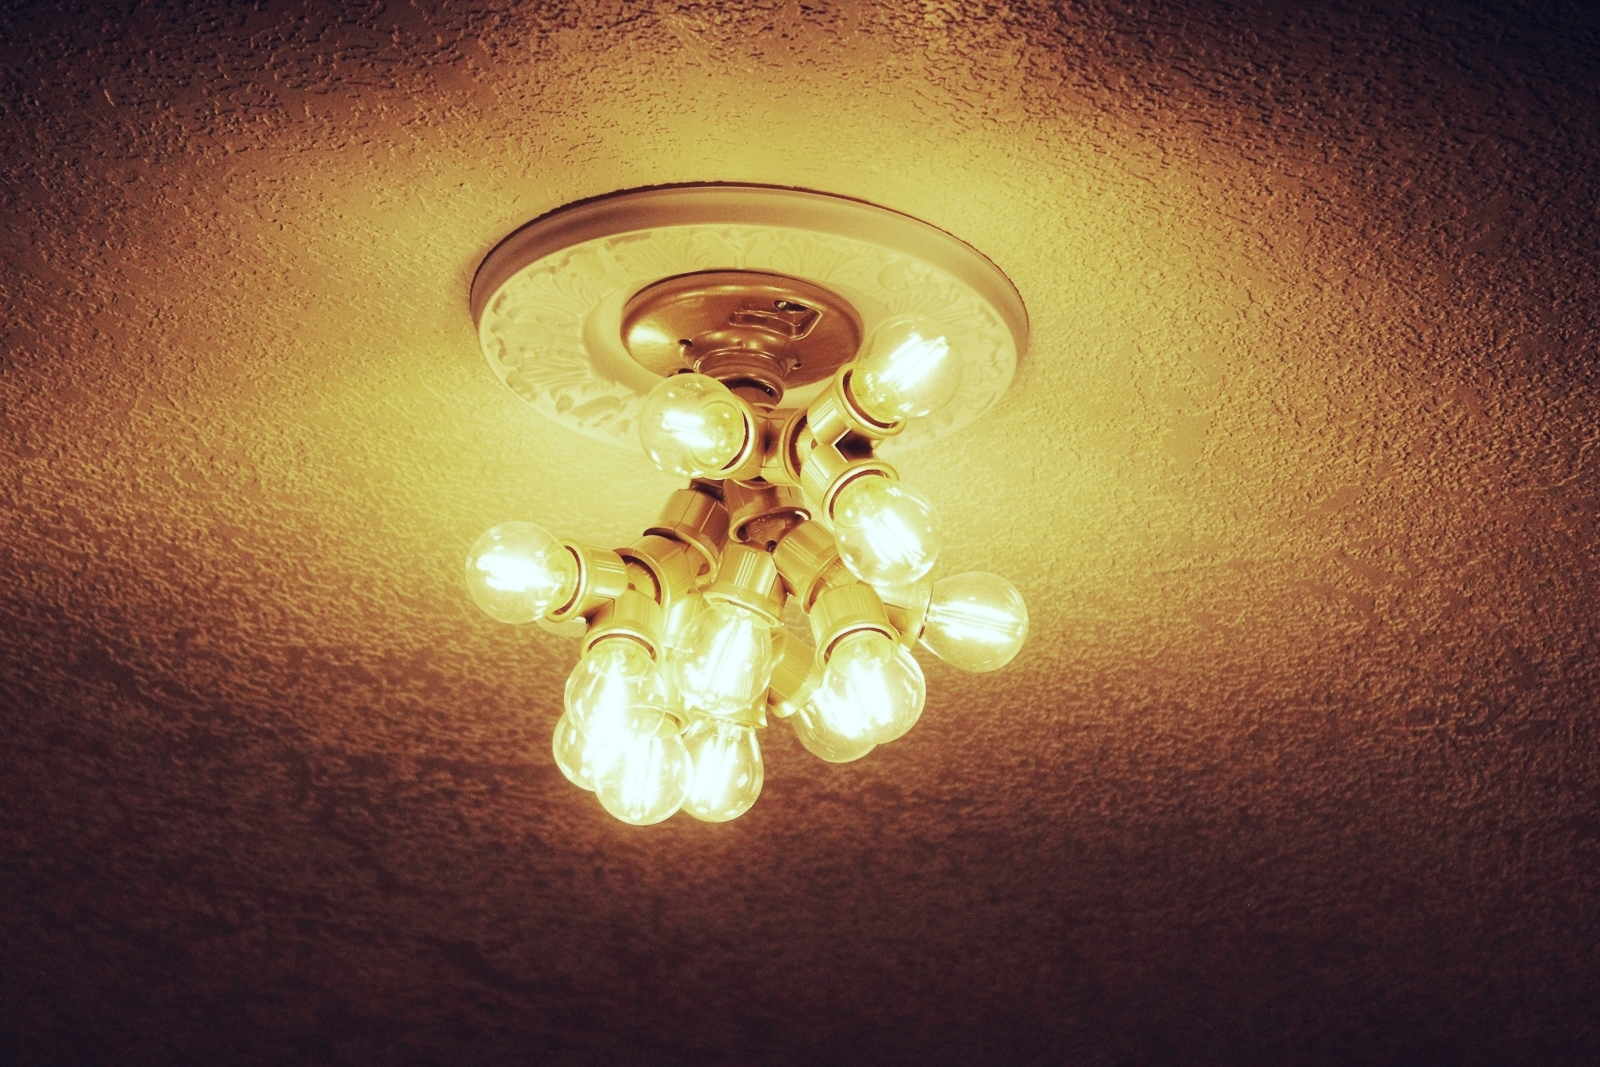 Ceiling light fixture made with branched out socket splitters step 10 install bulbs and turn it on arubaitofo Choice Image